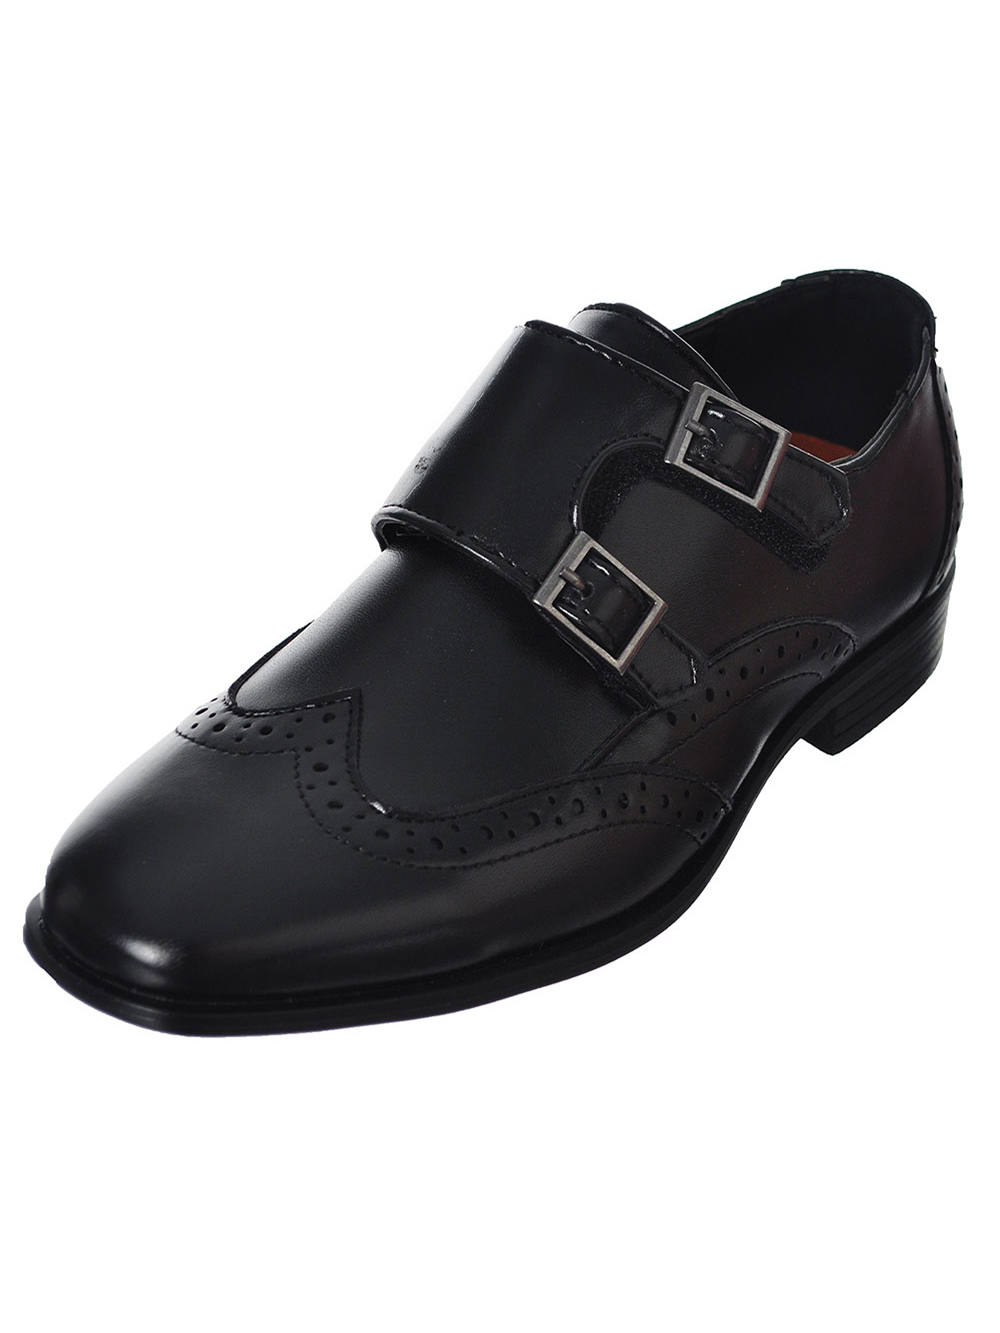 Jodano Collection Boys' Double-Buckle Wingtip Dress Shoes (Sizes 5 - 8)